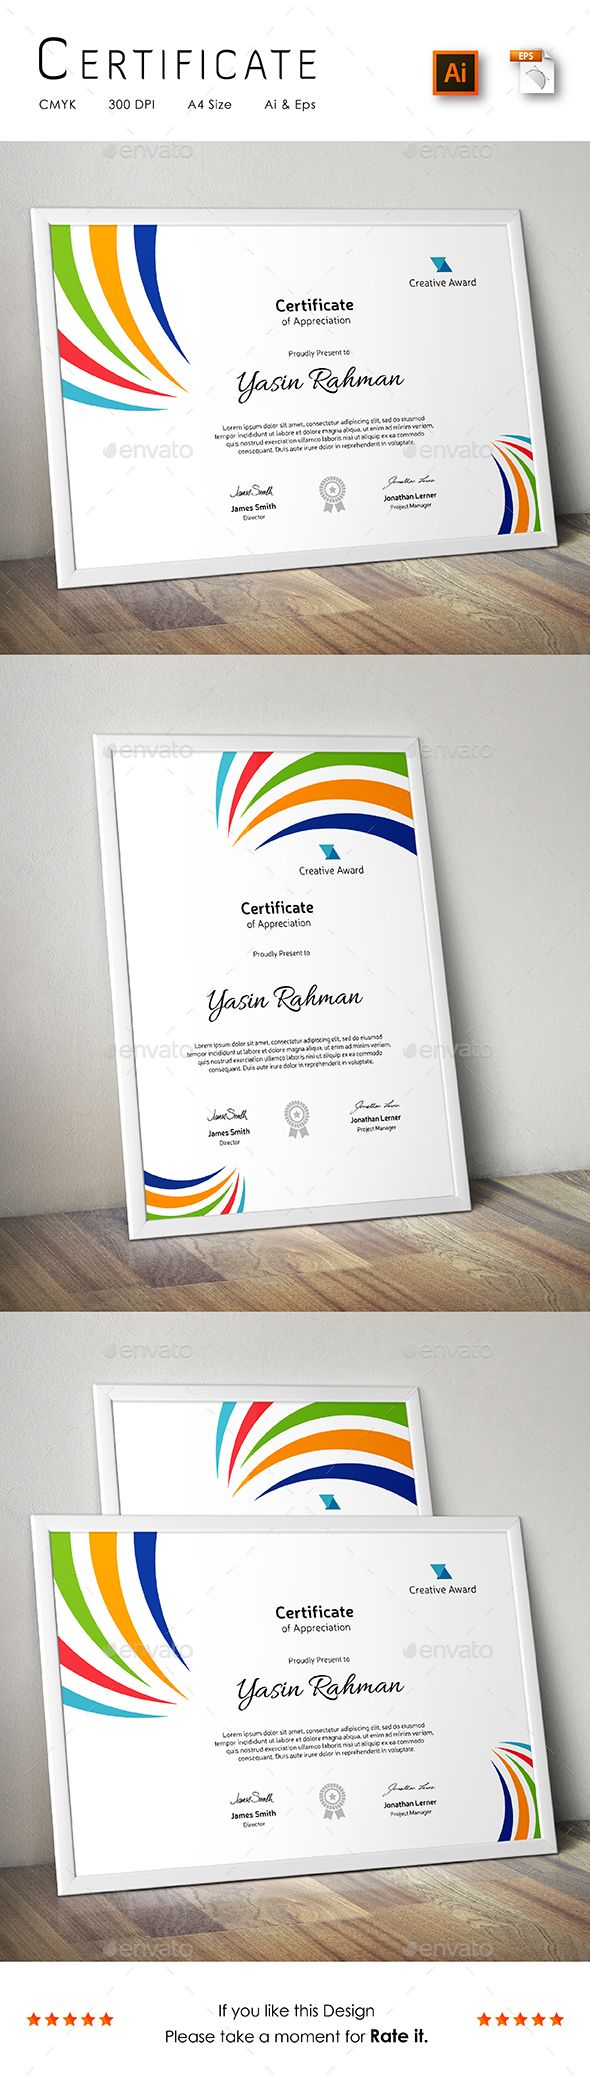 The 23 best Certificate Template Design images on Pinterest ...